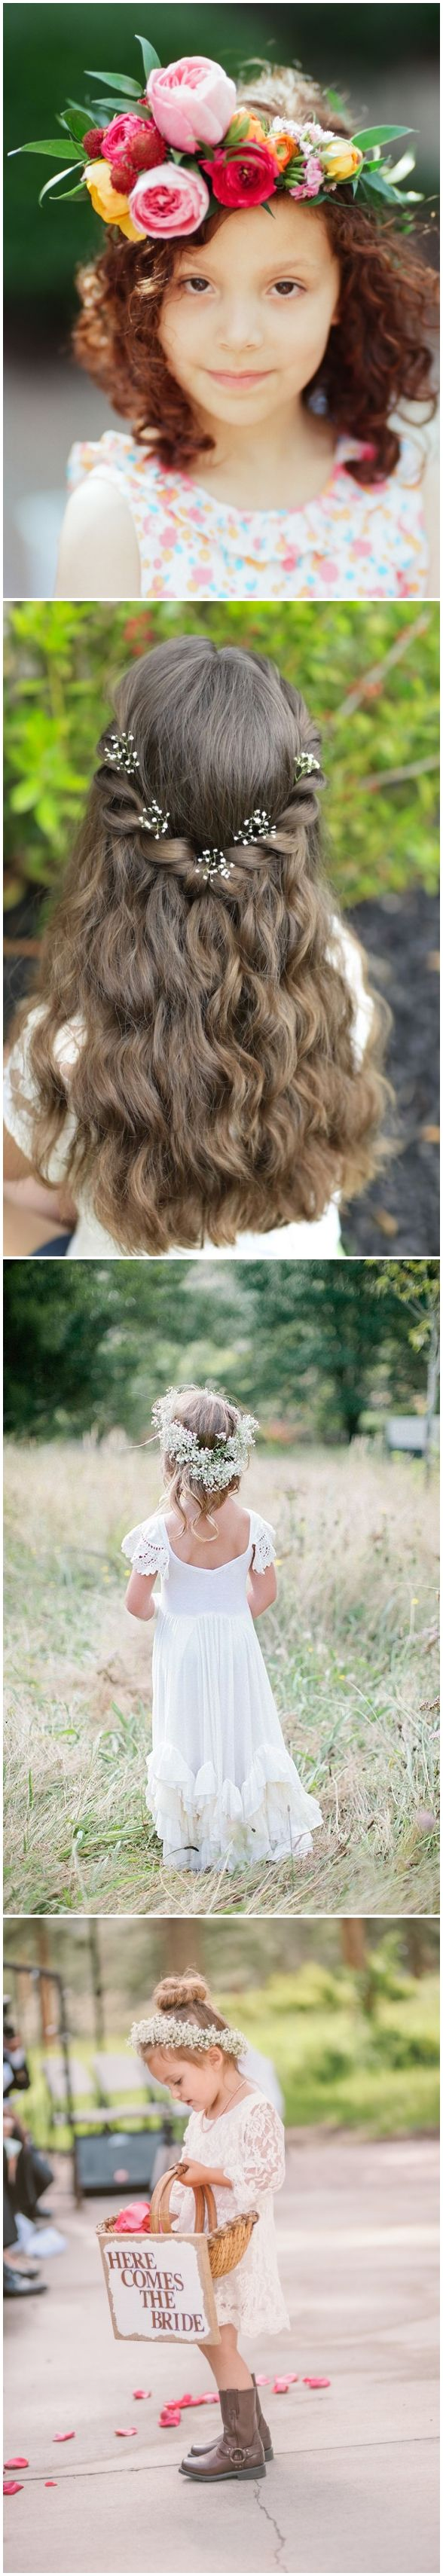 cute little girl hairstyles-updos, braids, waterfall / www.deerpearlflow...